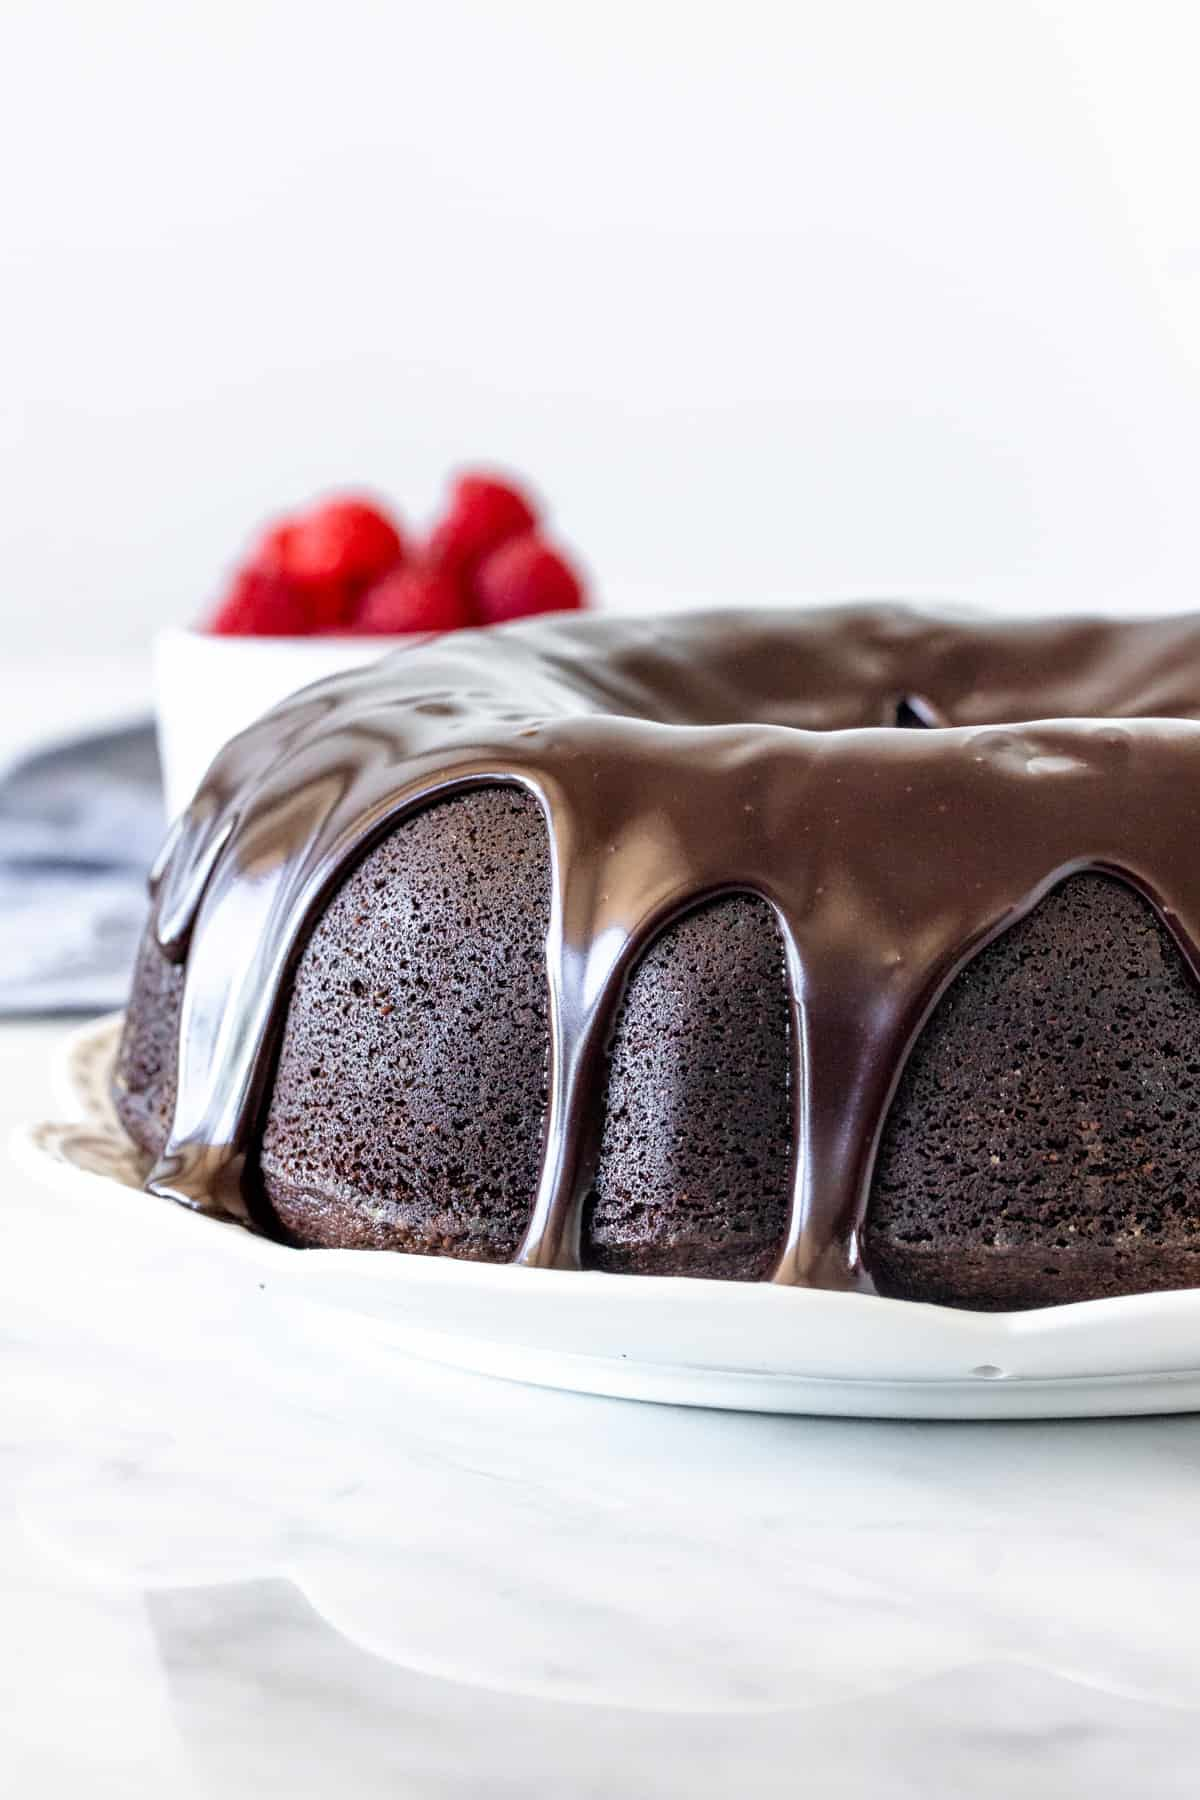 Chocolate pound cake with chocolate drizzled on top